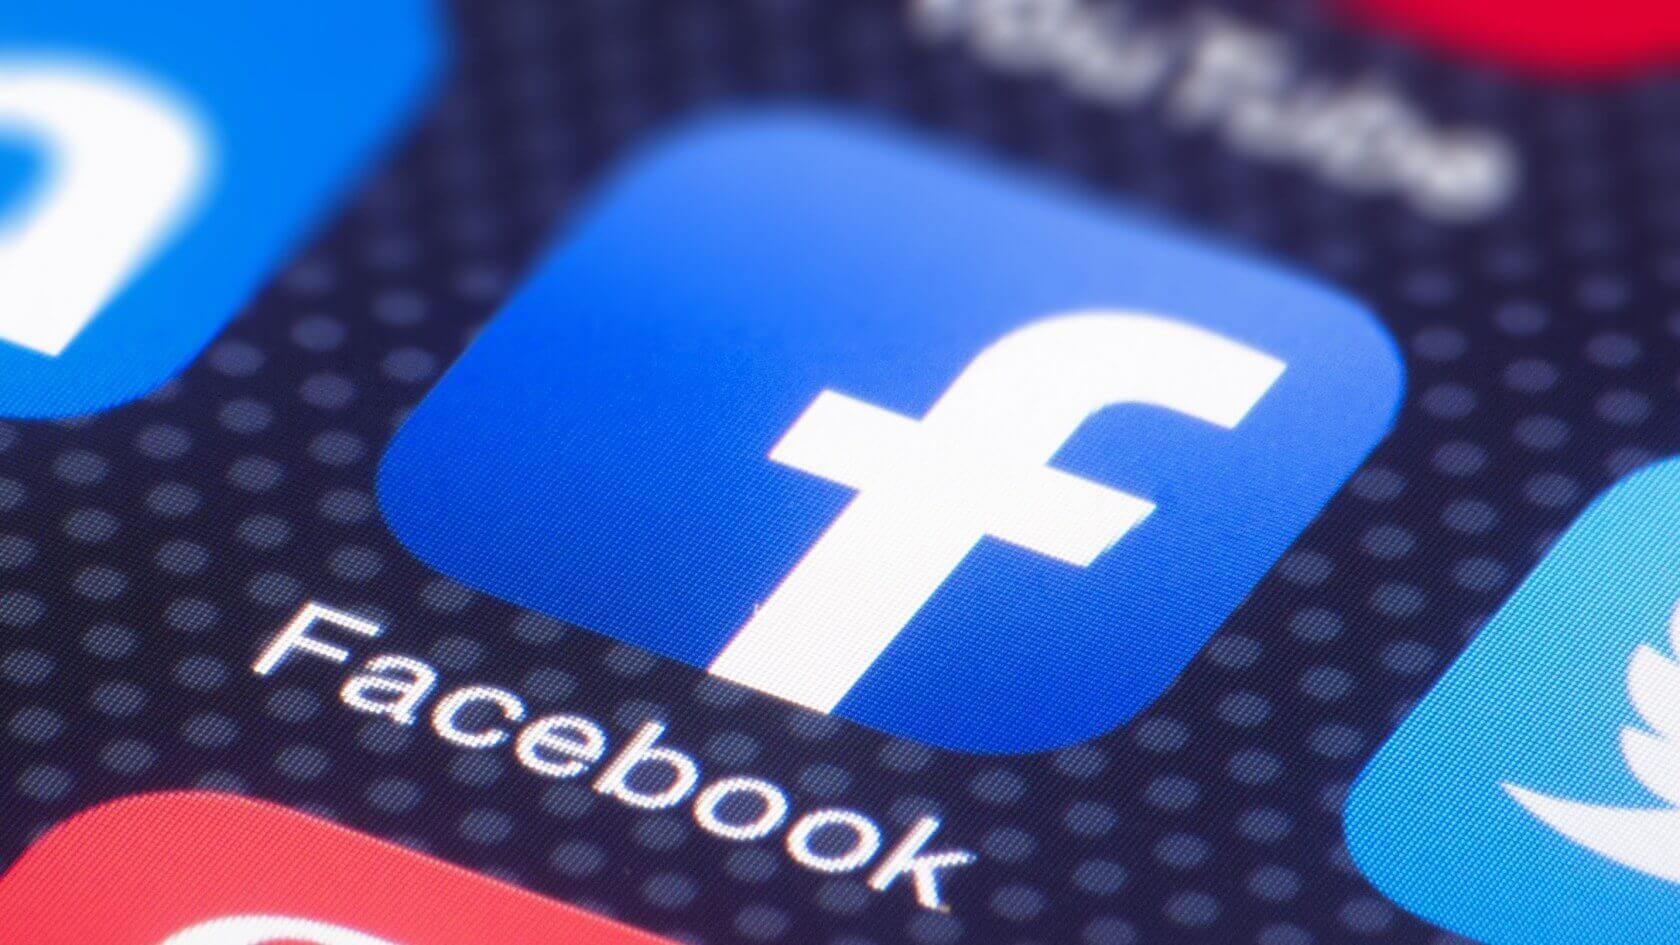 iPhone bug shows Facebook app accessing the camera while scrolling through videos and the newsfeed